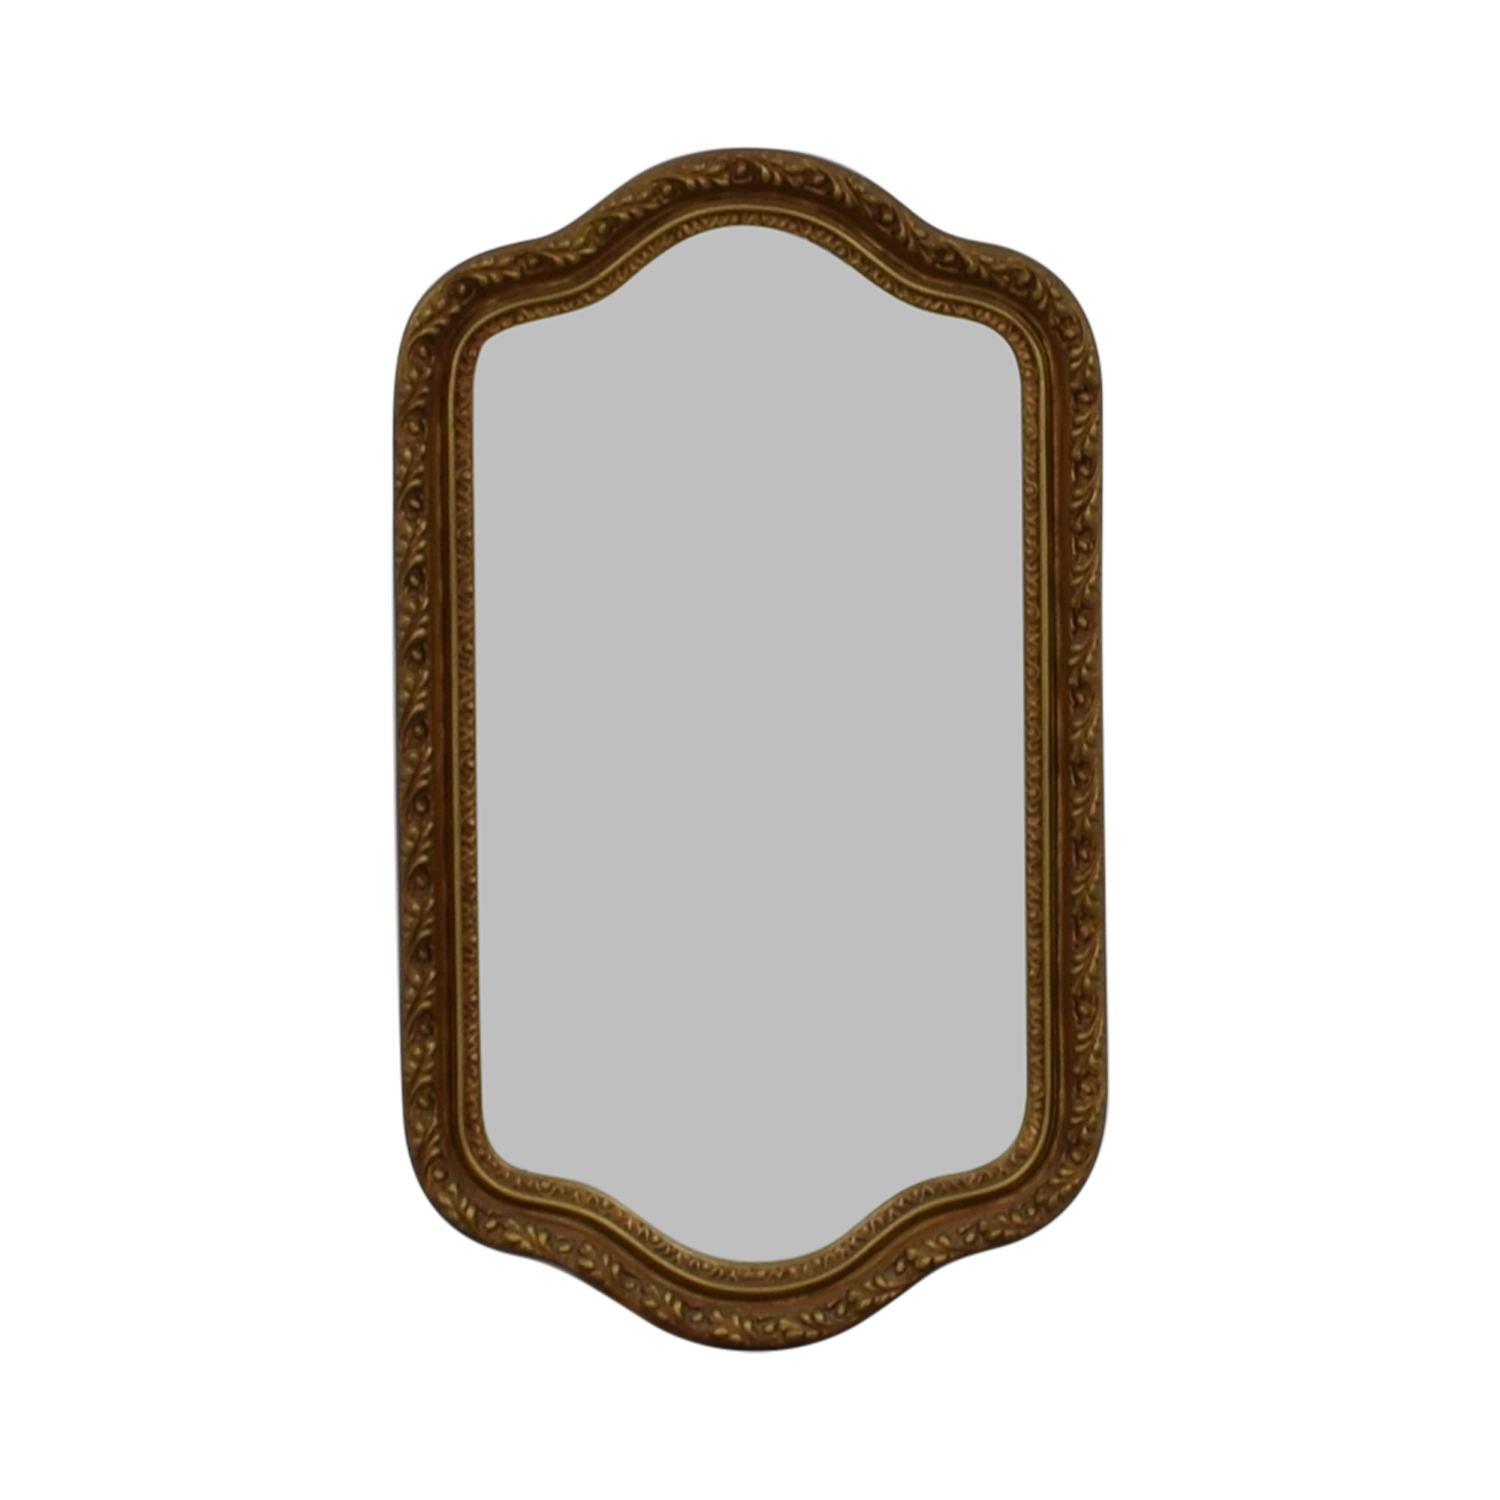 Crown Crown Gold Painted Wood Framed Mirror for sale